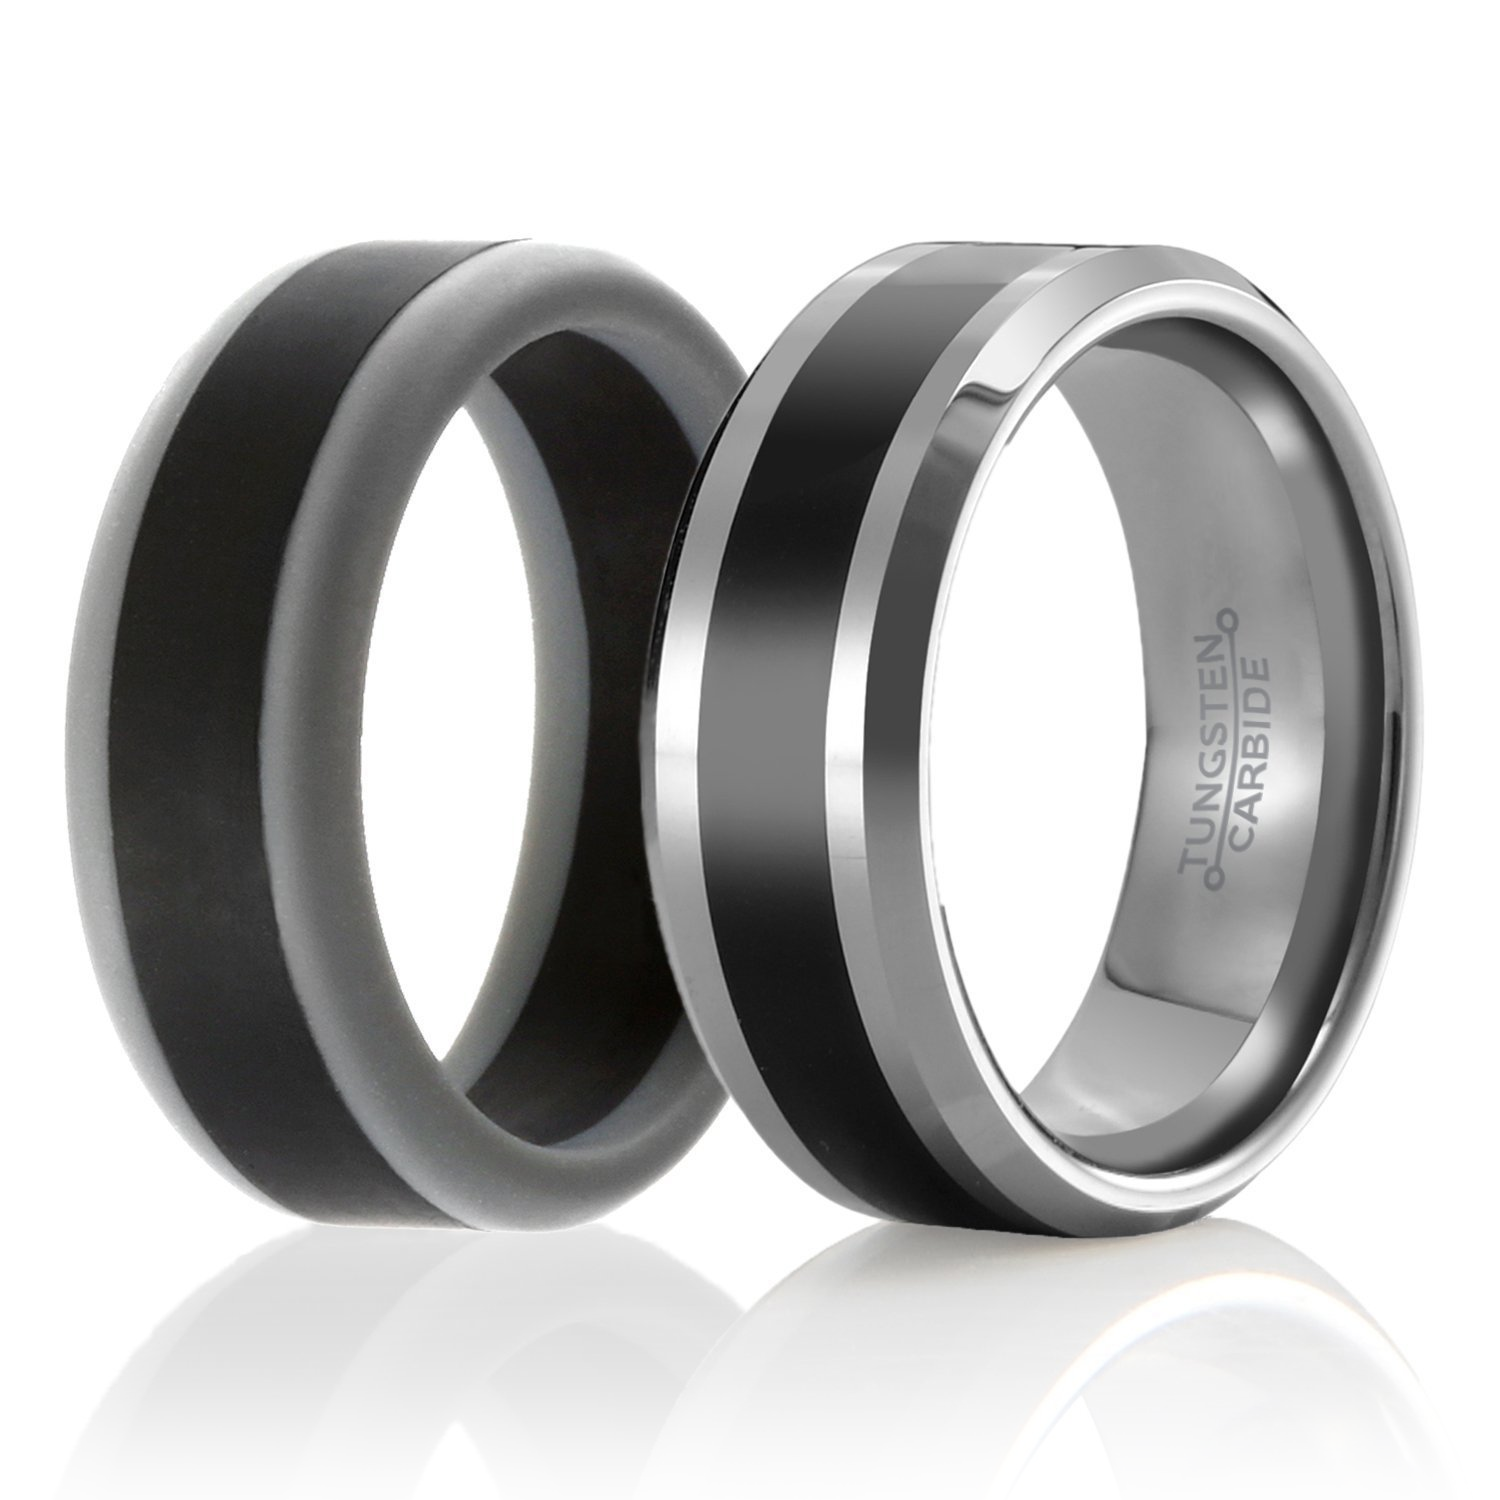 love thin product striped blackgold line thick silicone gol tough rings str wide band black bla nobg ring wm tlr gold